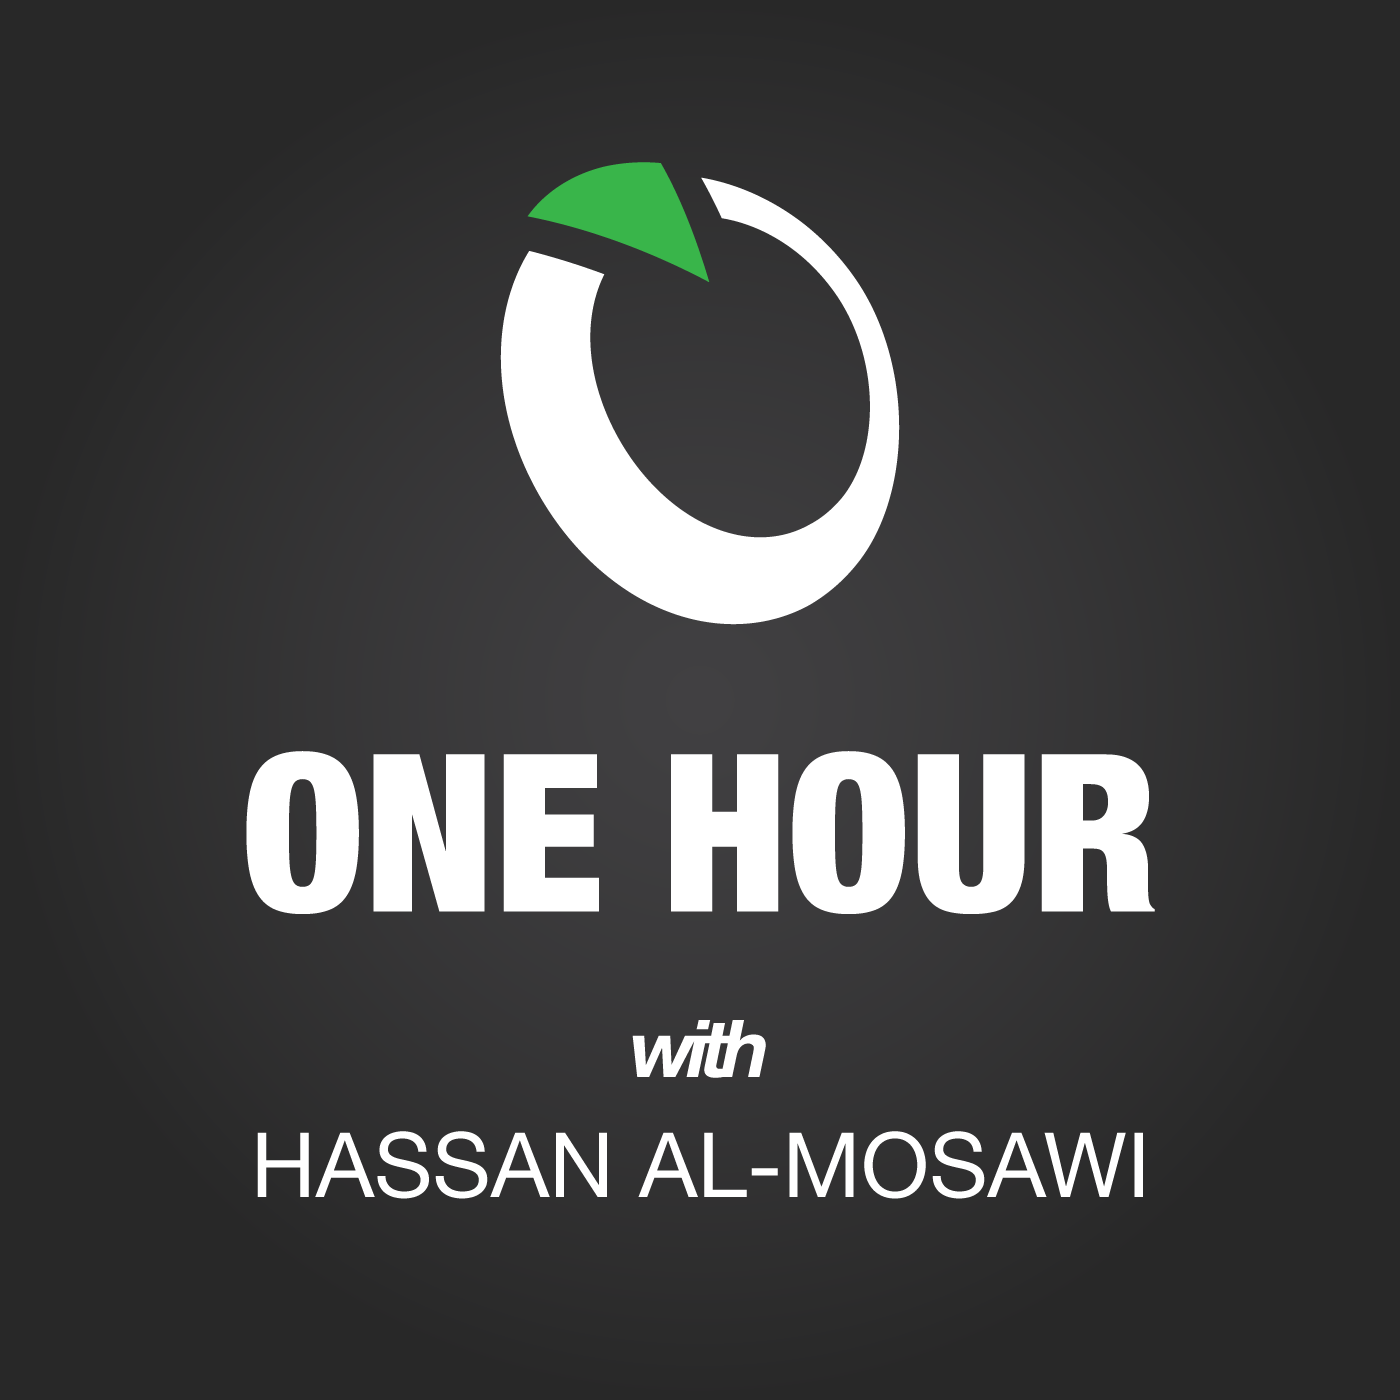 One Hour with Hassan Al-Mosawi